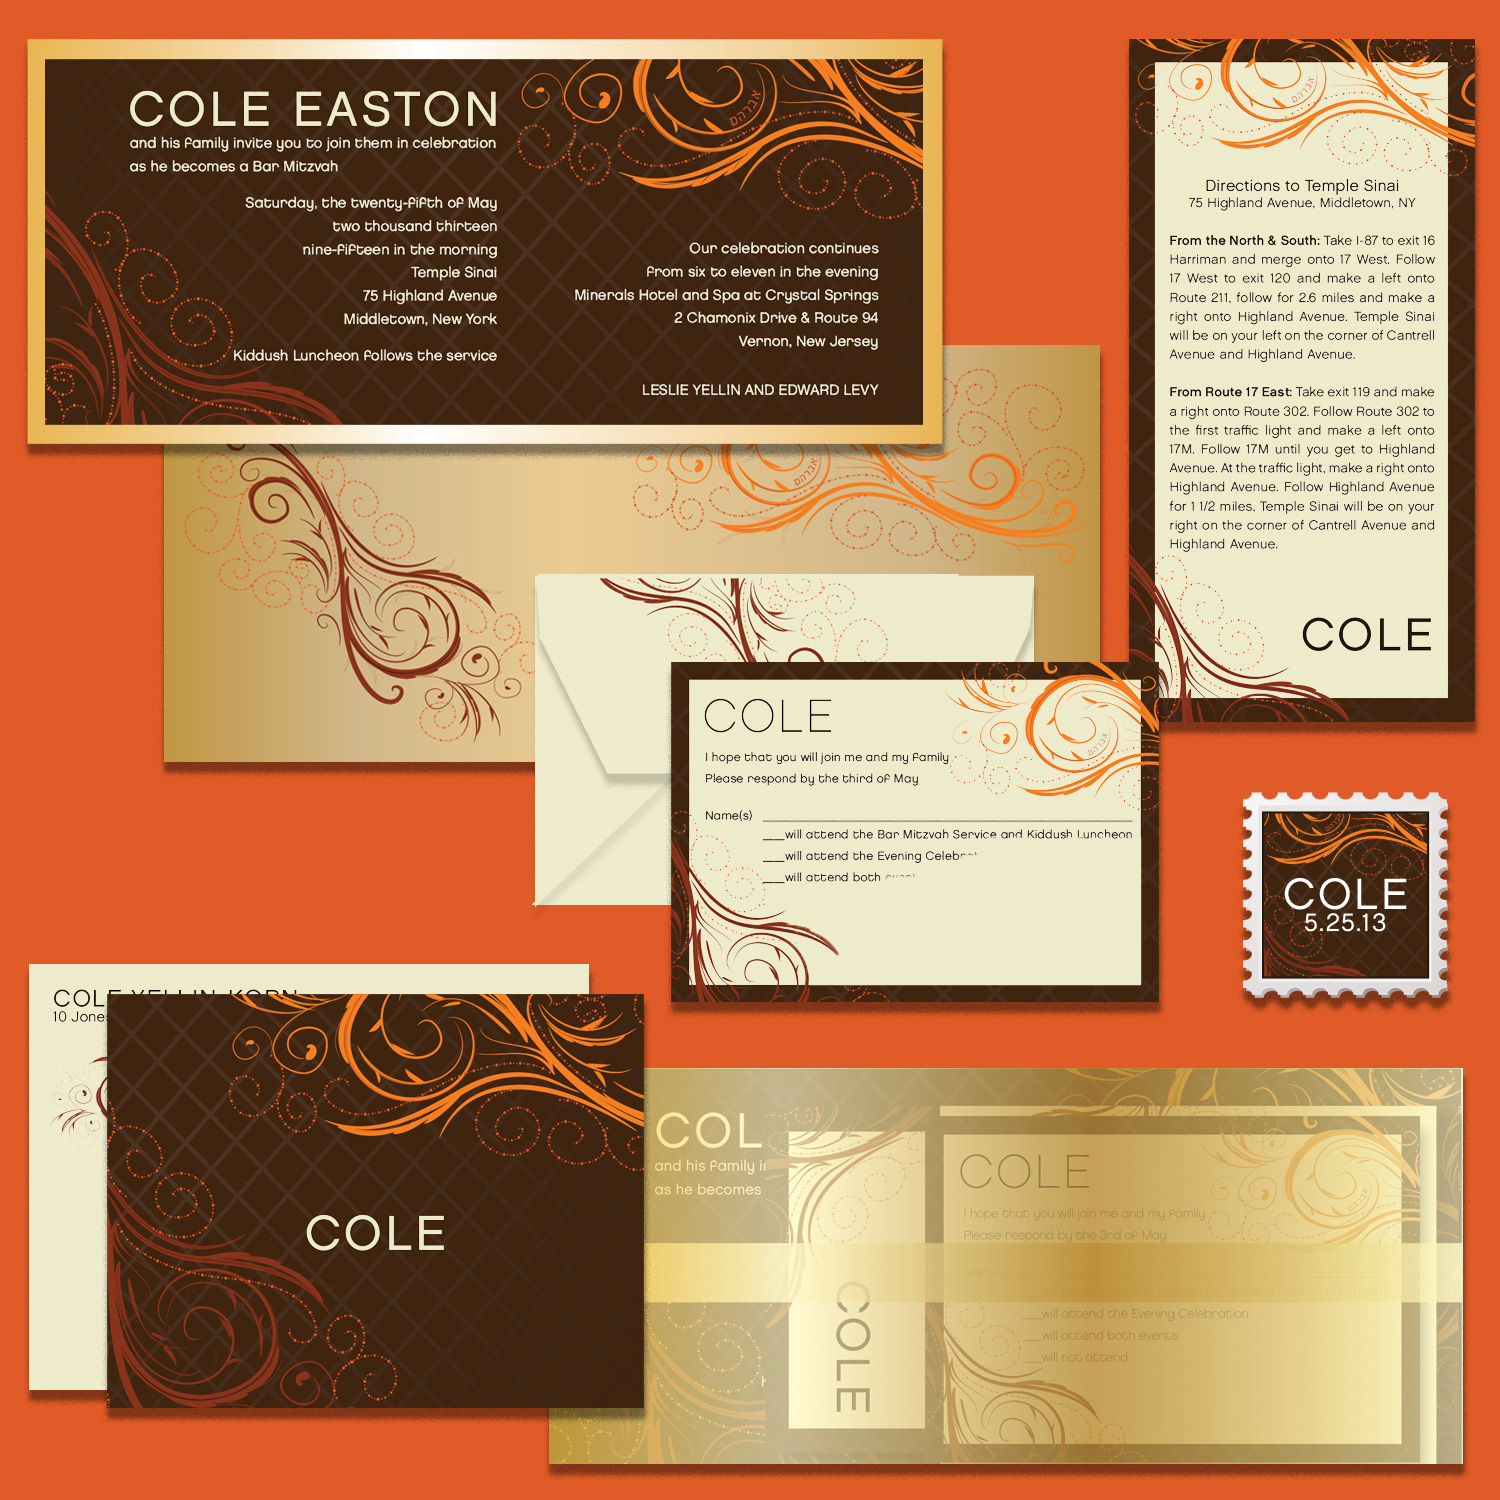 Bar Mitzvah nvitation mounted on metallic stock, with printed metallic envelope, enclosures, custom stamp, notecard with envelope; shown with translucent metallic paper wrapper for invitation and enclosures